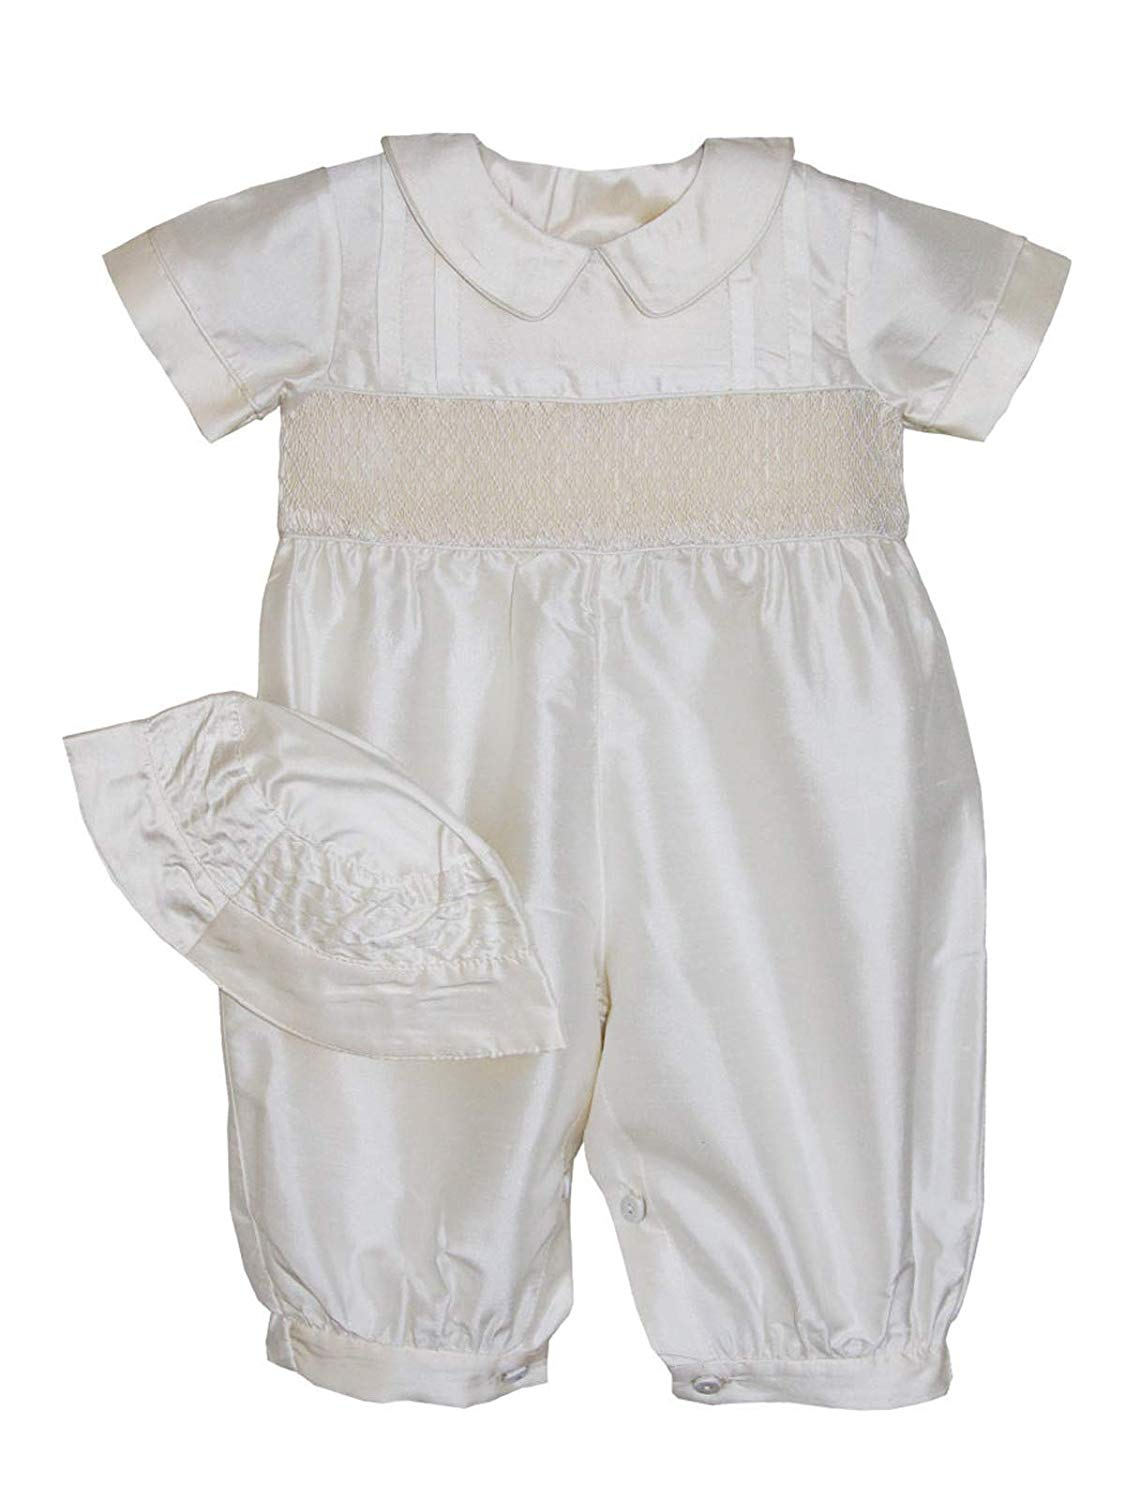 7f7f94ba1 Carouselwear Special Occasion Baby Boy Silk Smocked Christening Outfit